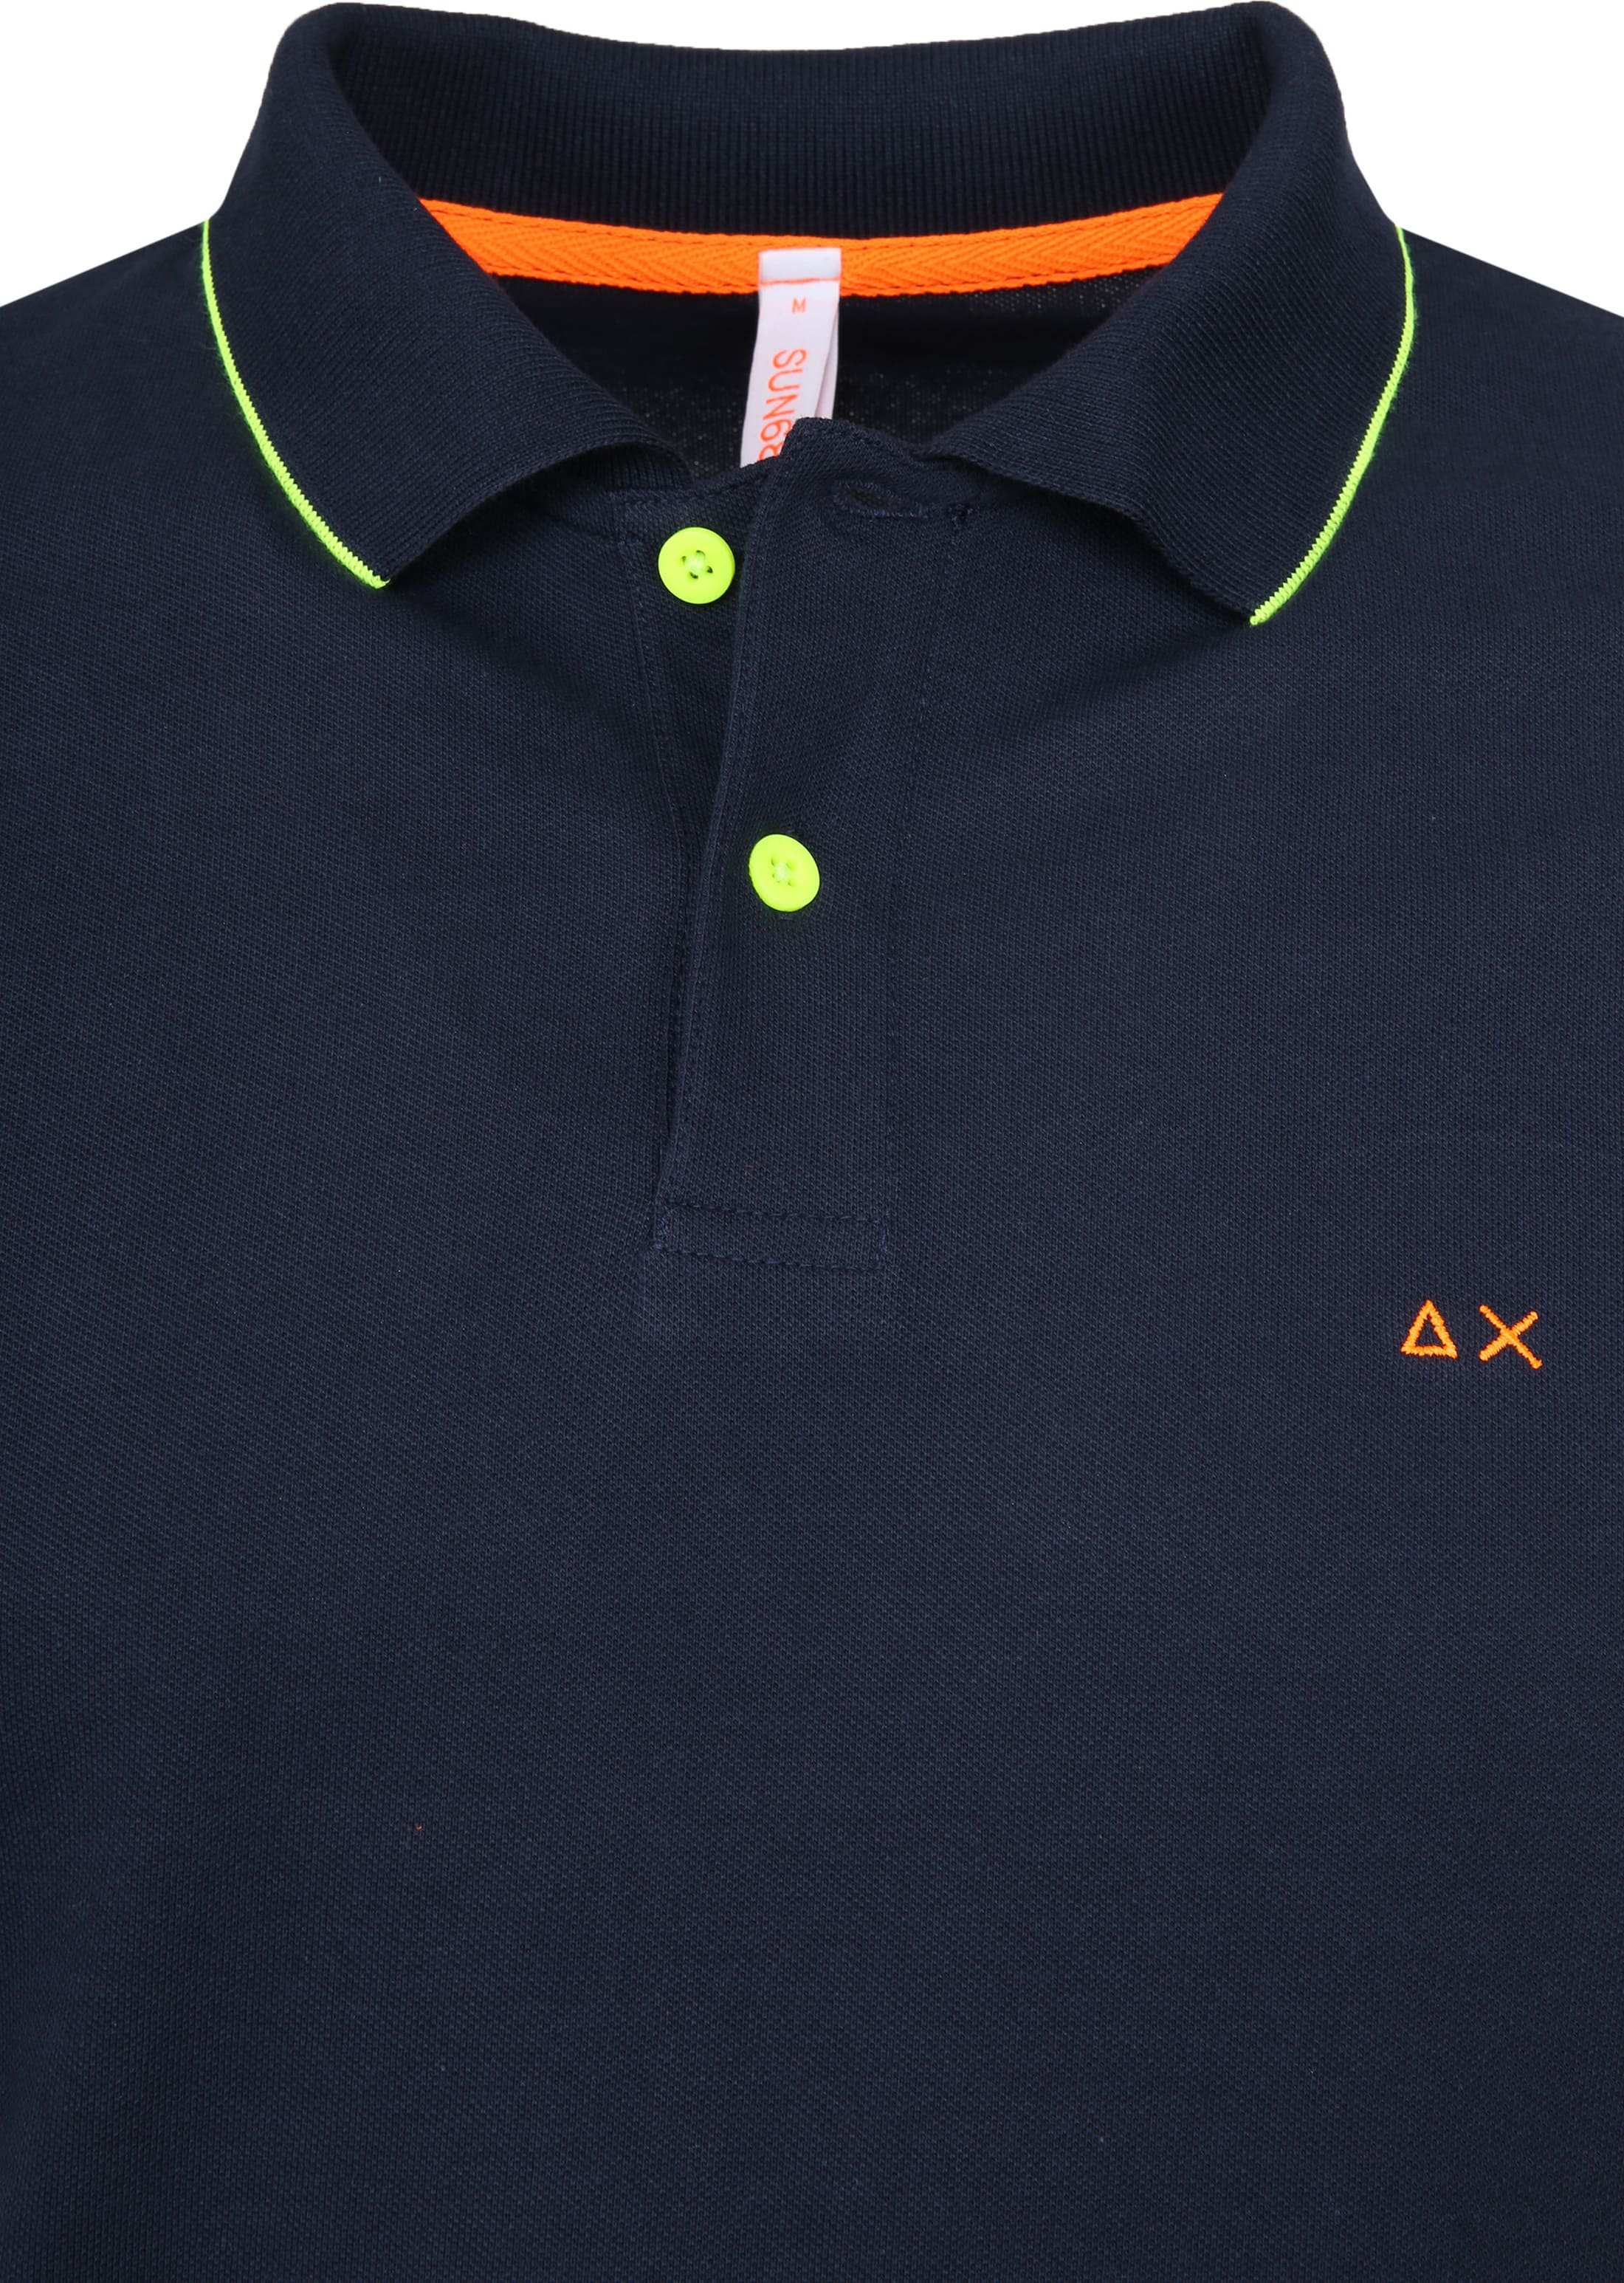 Sun68 Poloshirt Small Stripes Fluo Navy foto 1